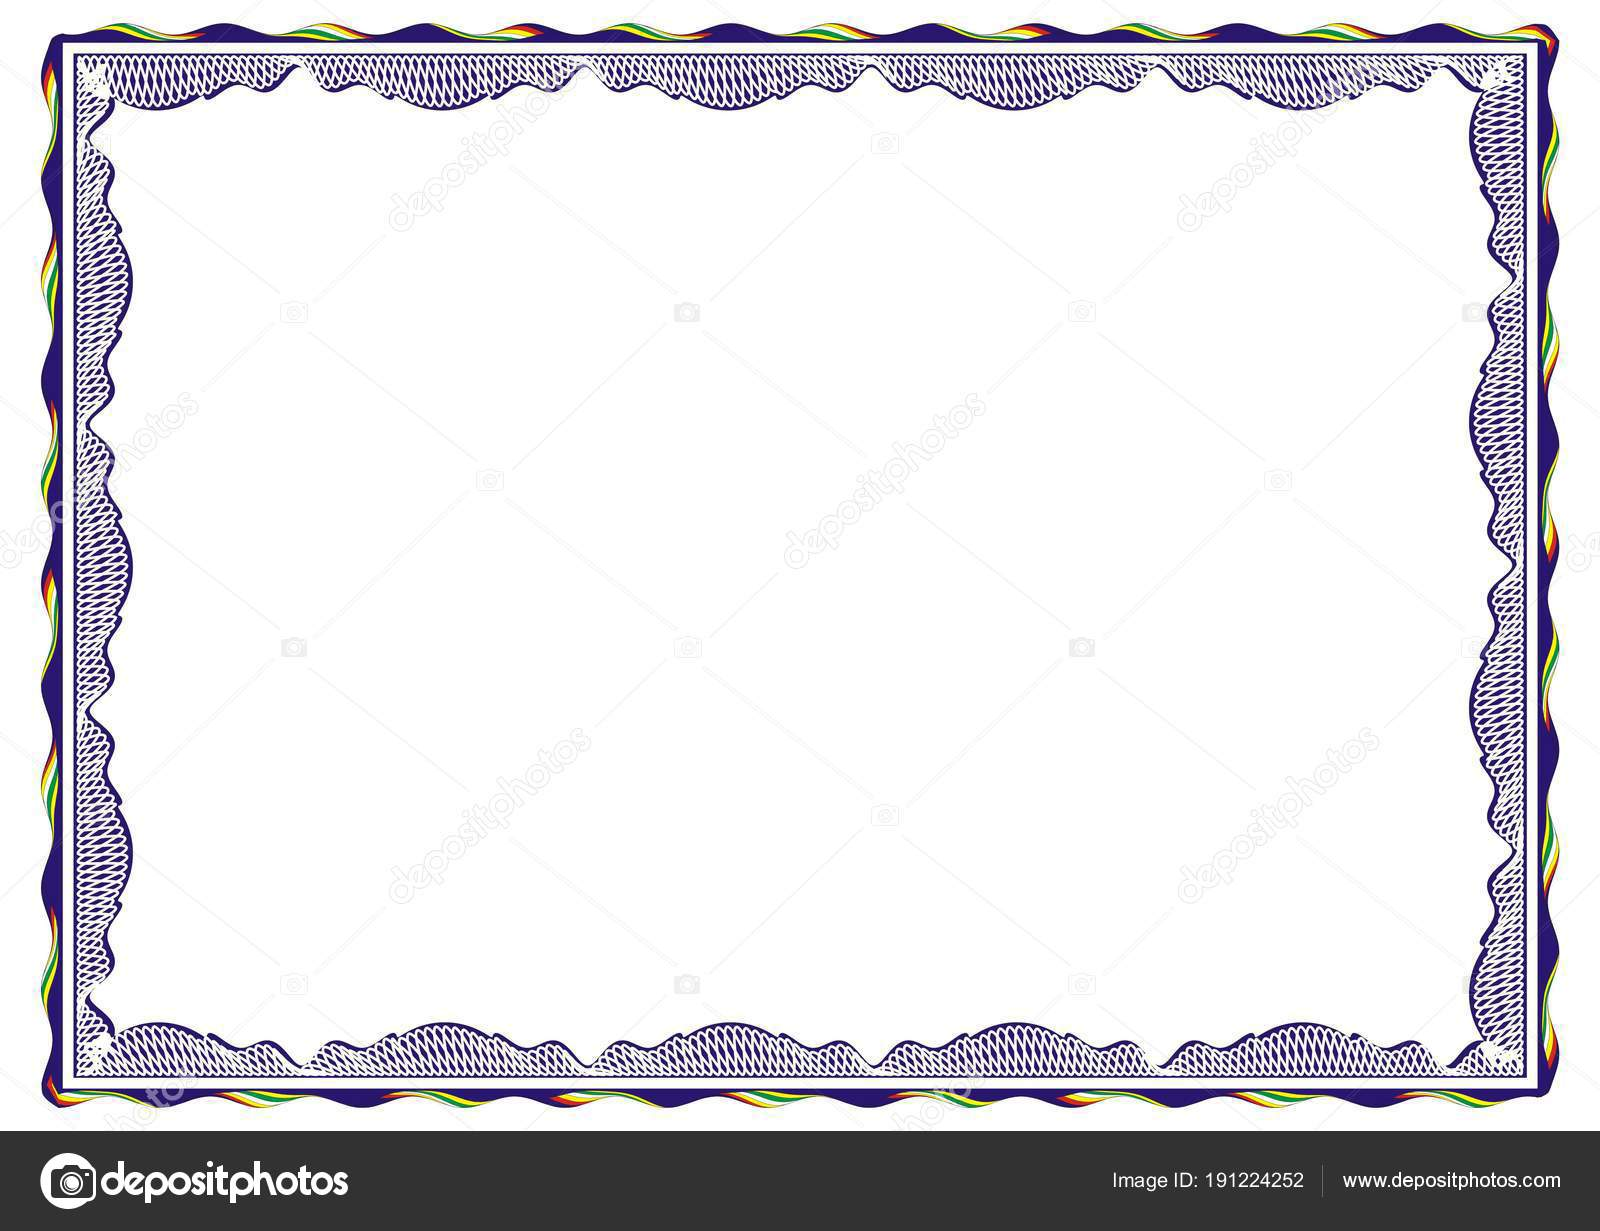 Insulated frame background template certificate diploma stock insulated frame background template certificate diploma stock photo yelopaper Choice Image